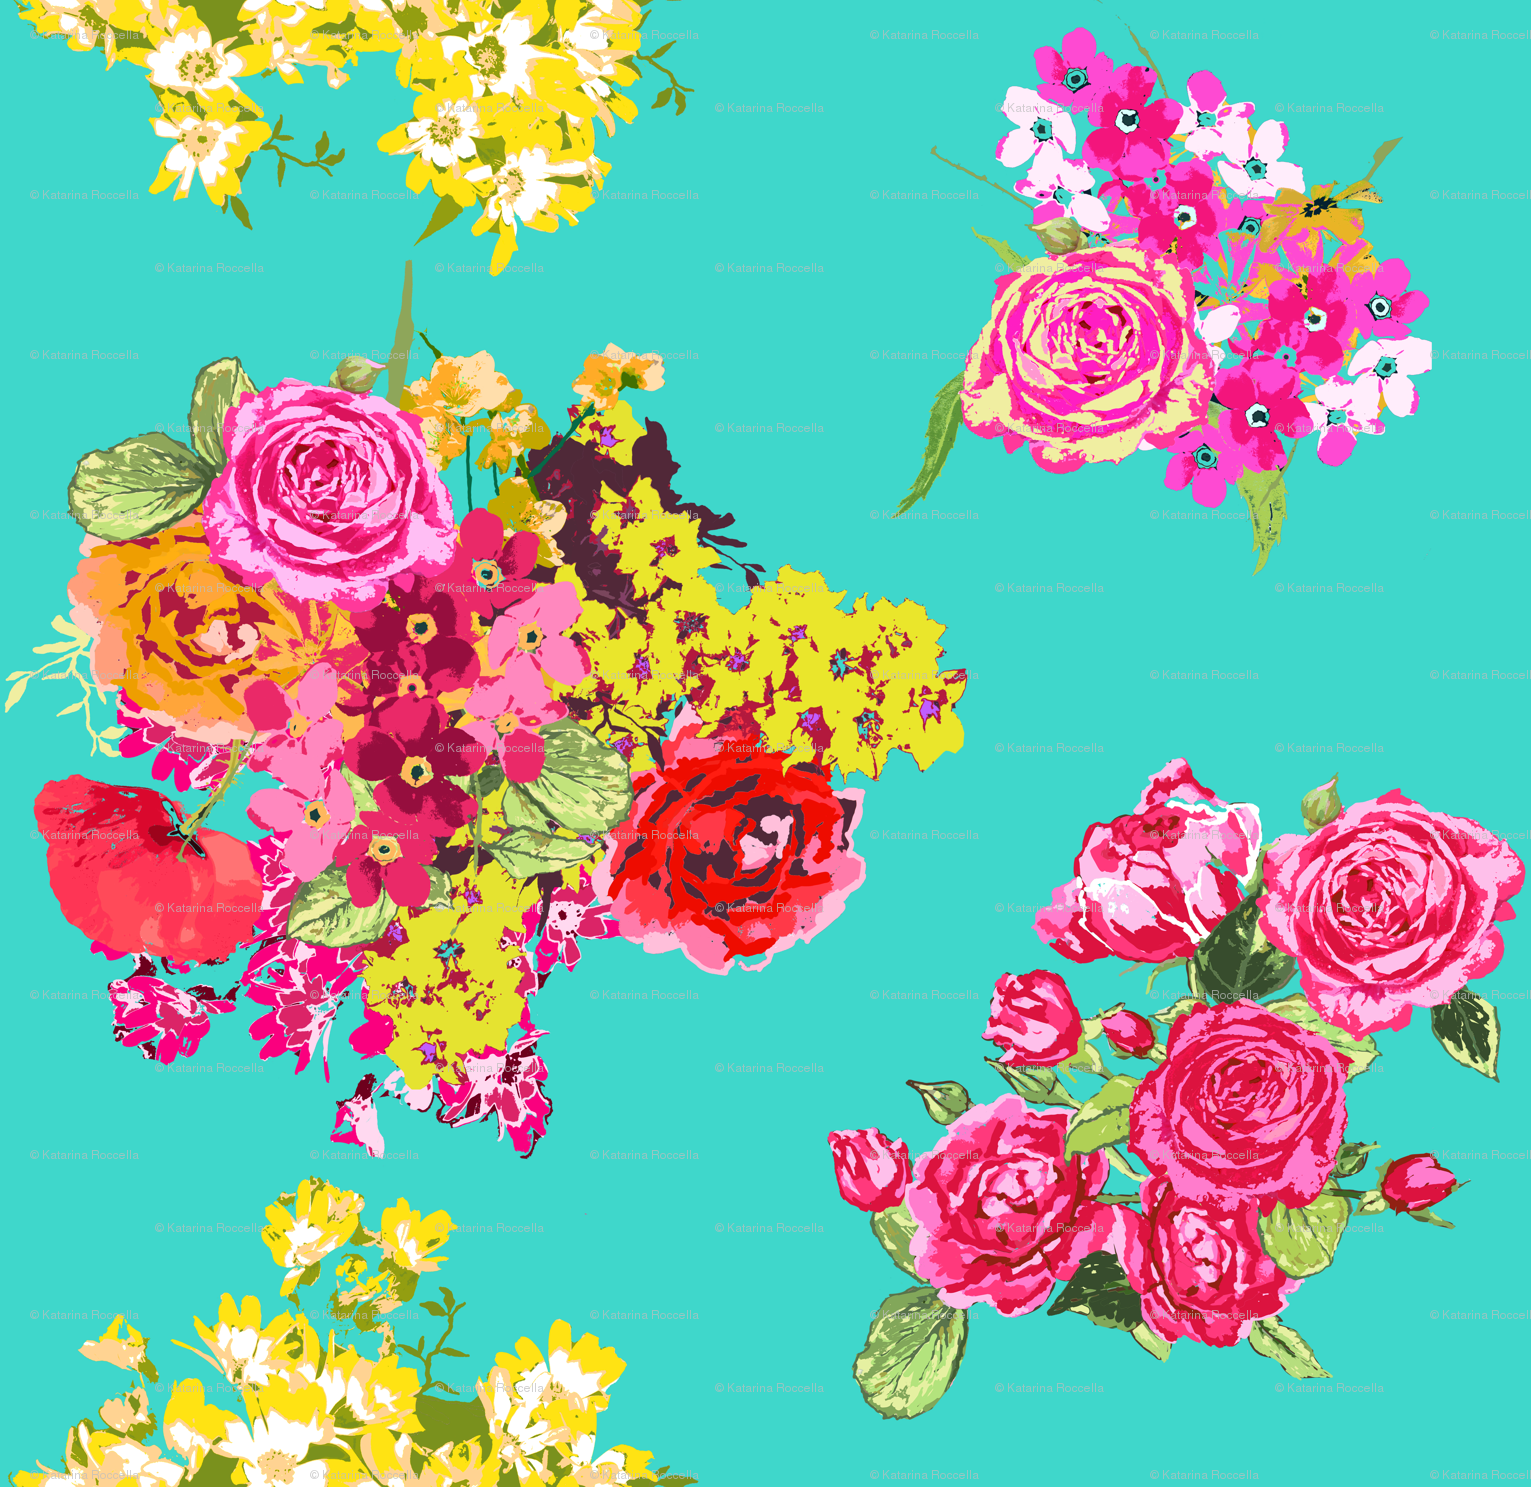 Pink Flowers Wallpaper: Download Turquoise Wallpaper With Pink Flowers Gallery